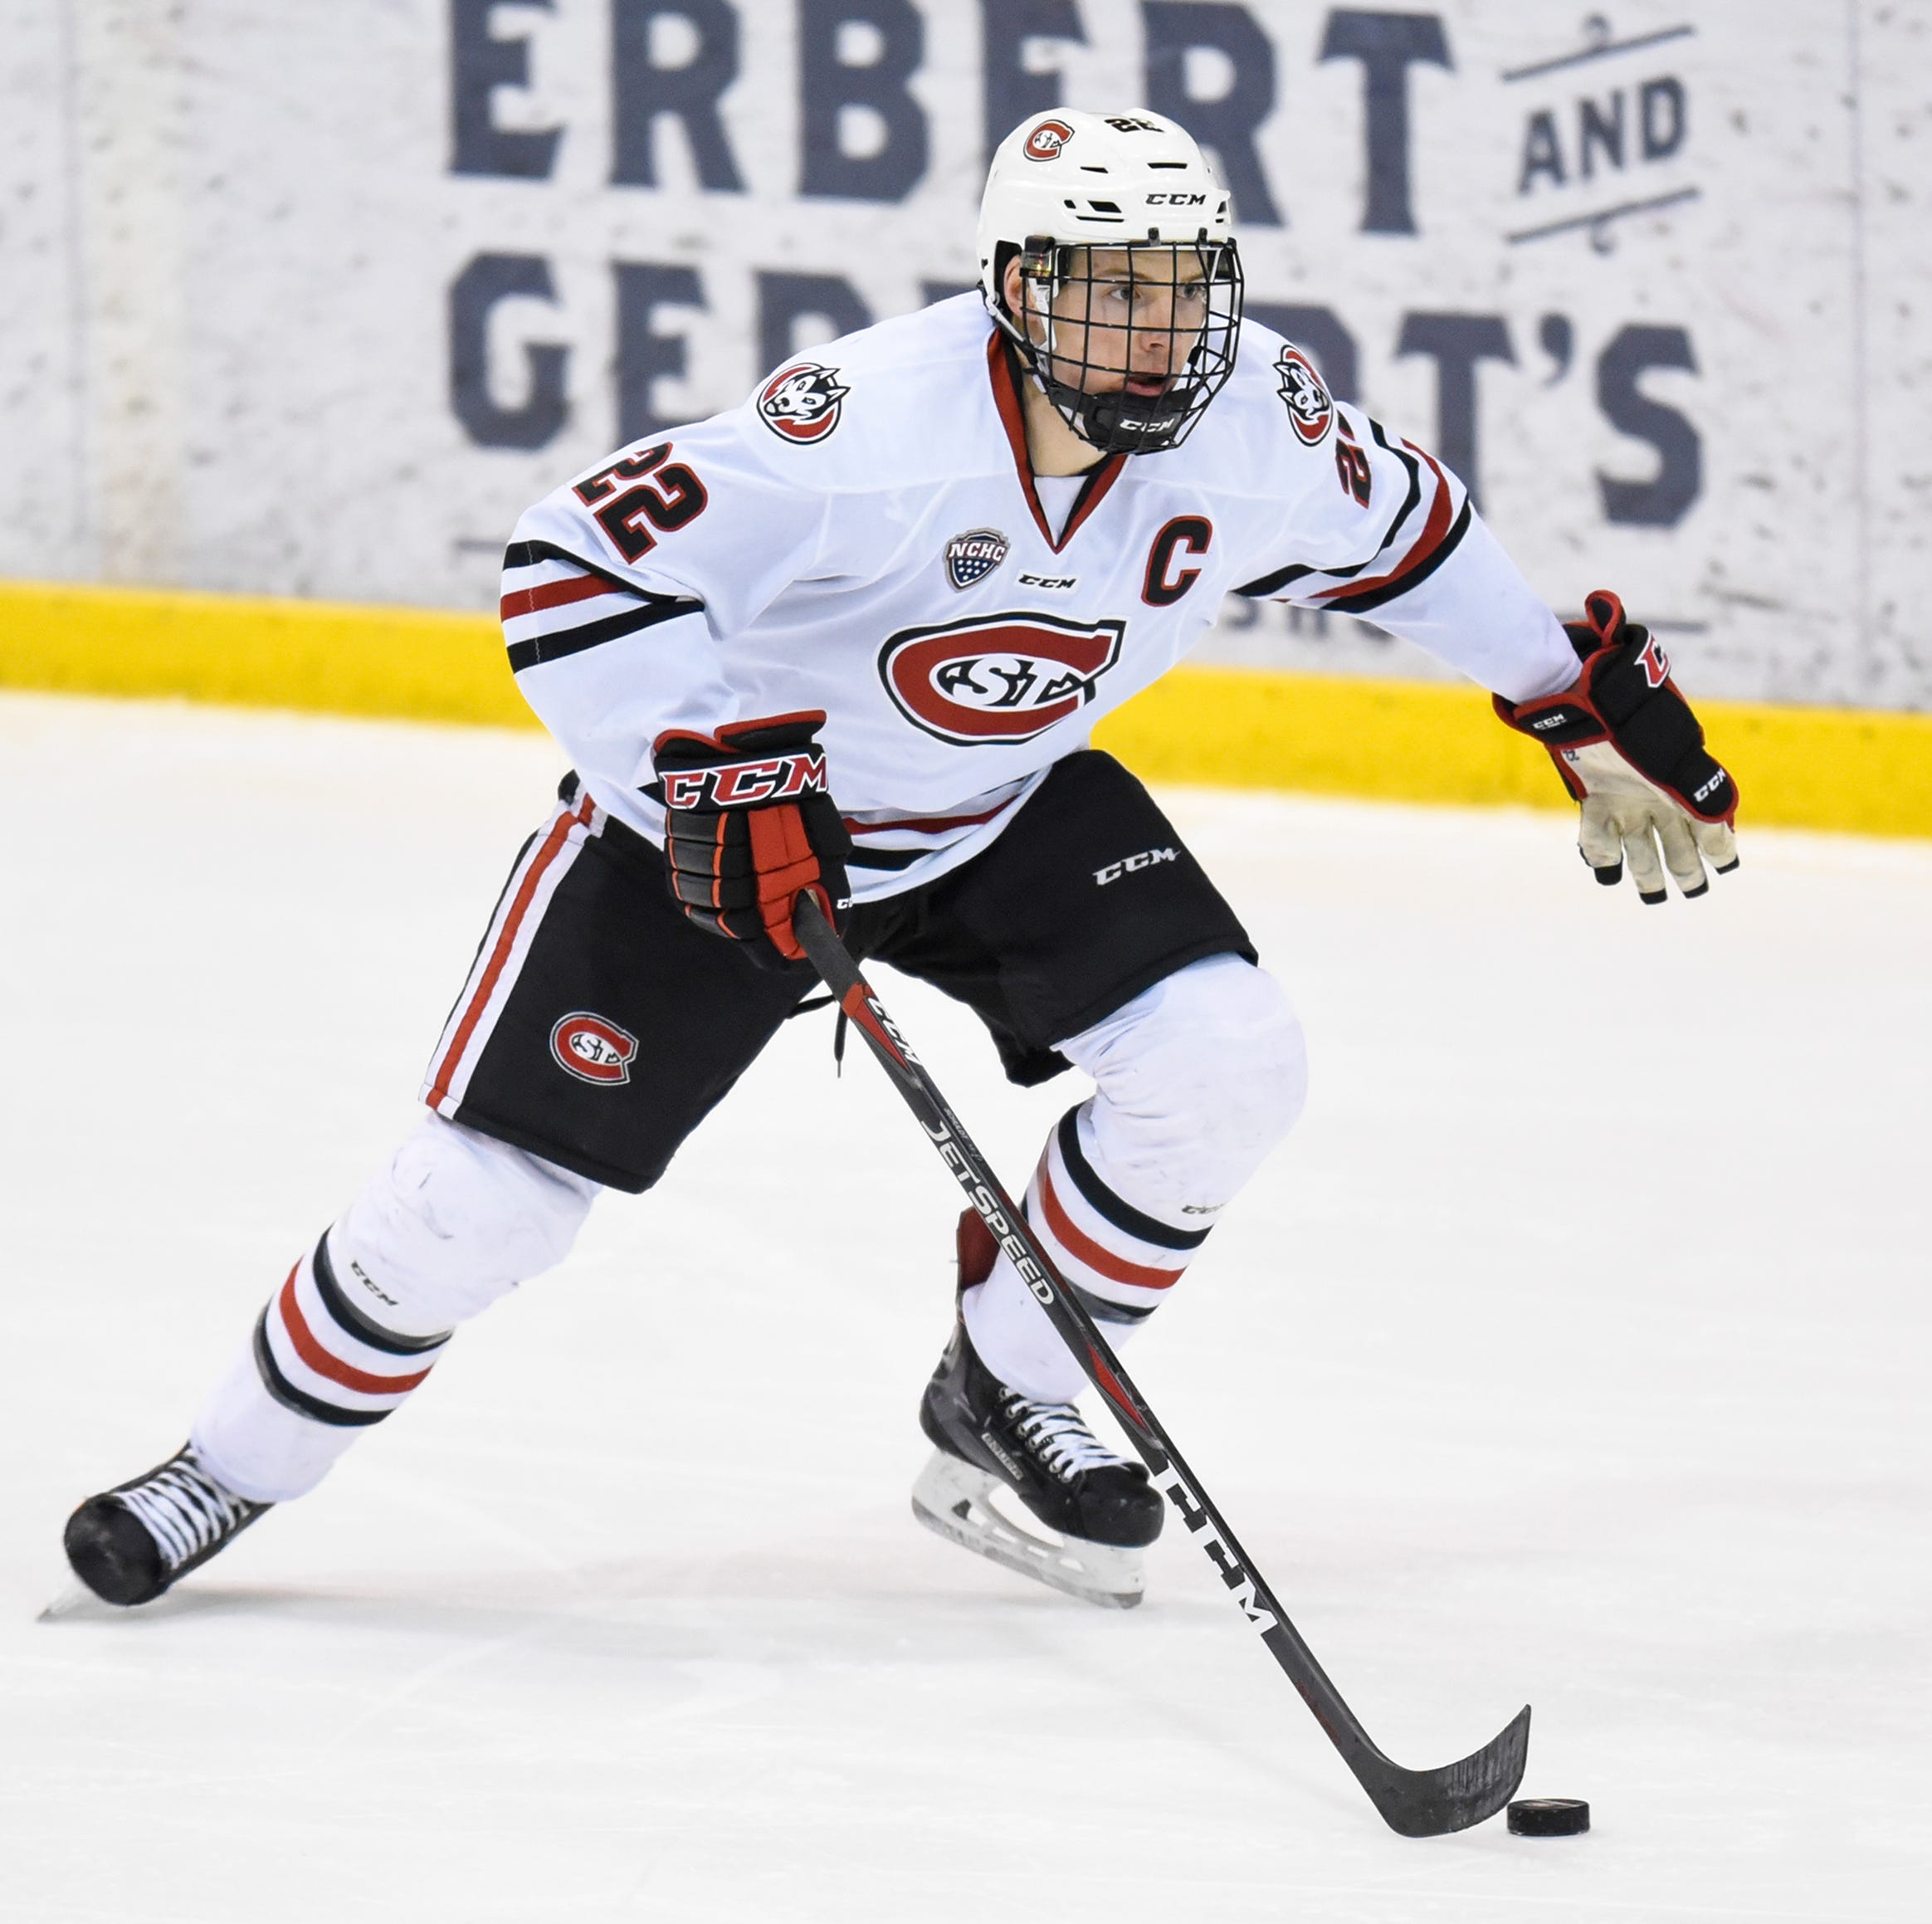 Schuldt, Newell named top 10 finalists for Hobey Baker Award